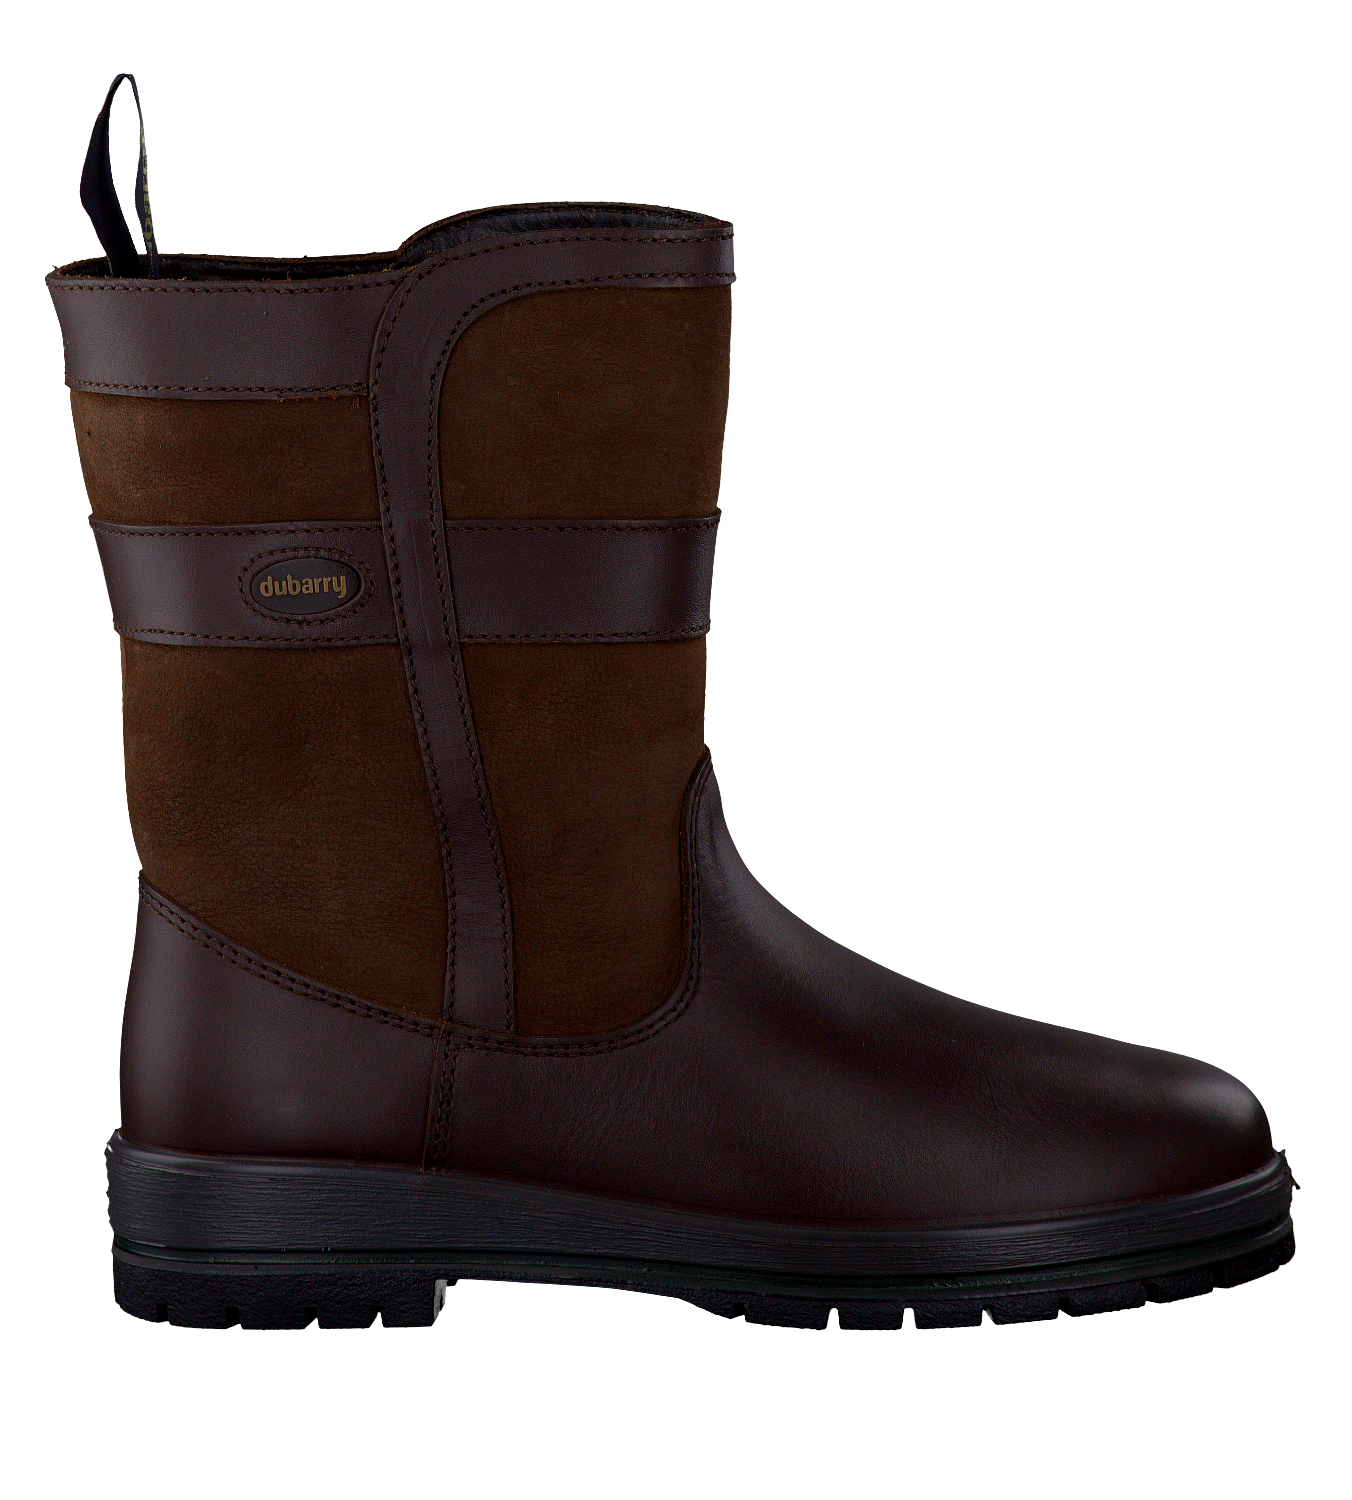 Dubarry Enkelboots Roscommon